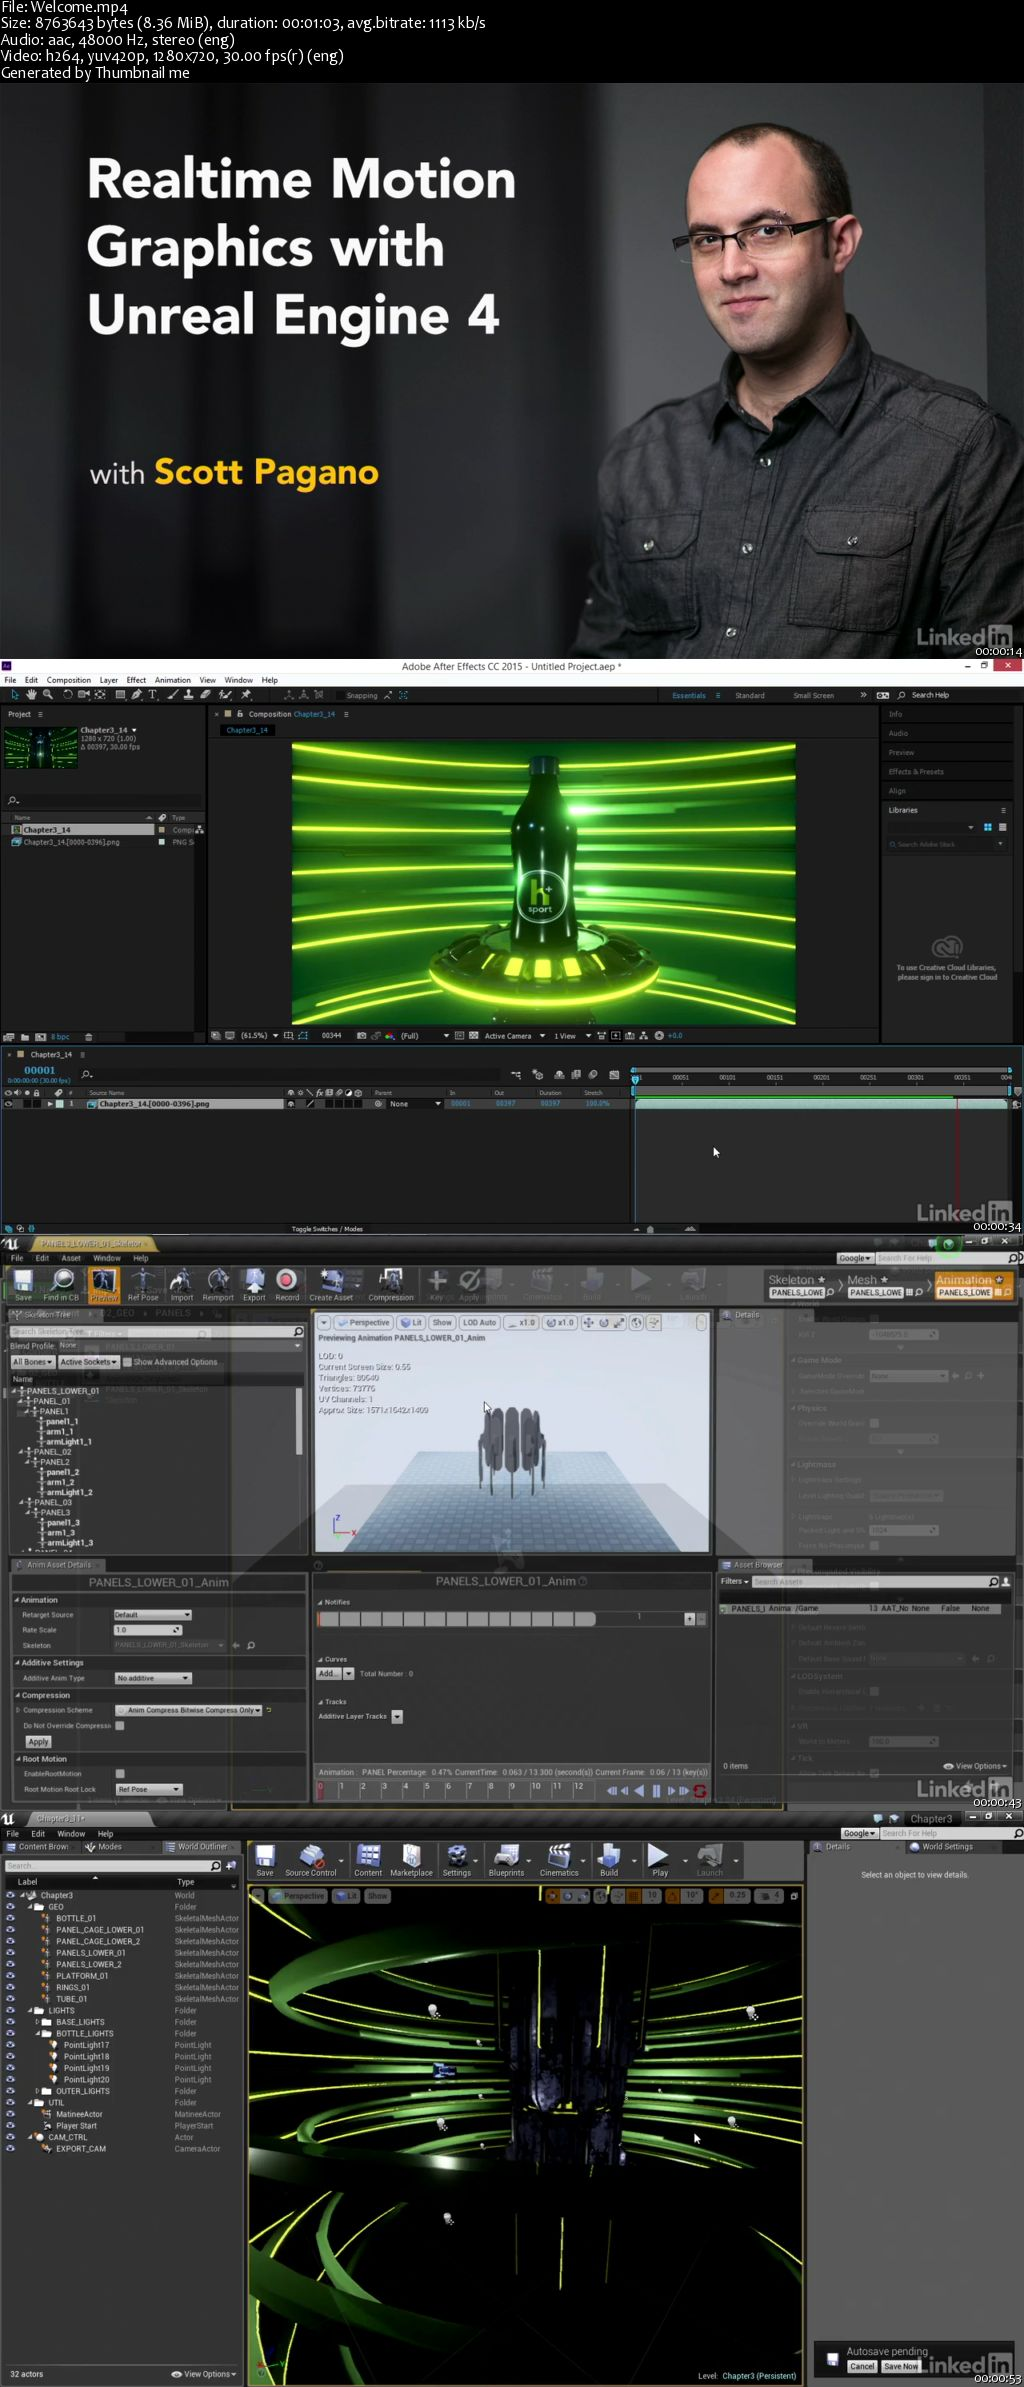 Realtime Motion Graphics with Unreal Engine 4